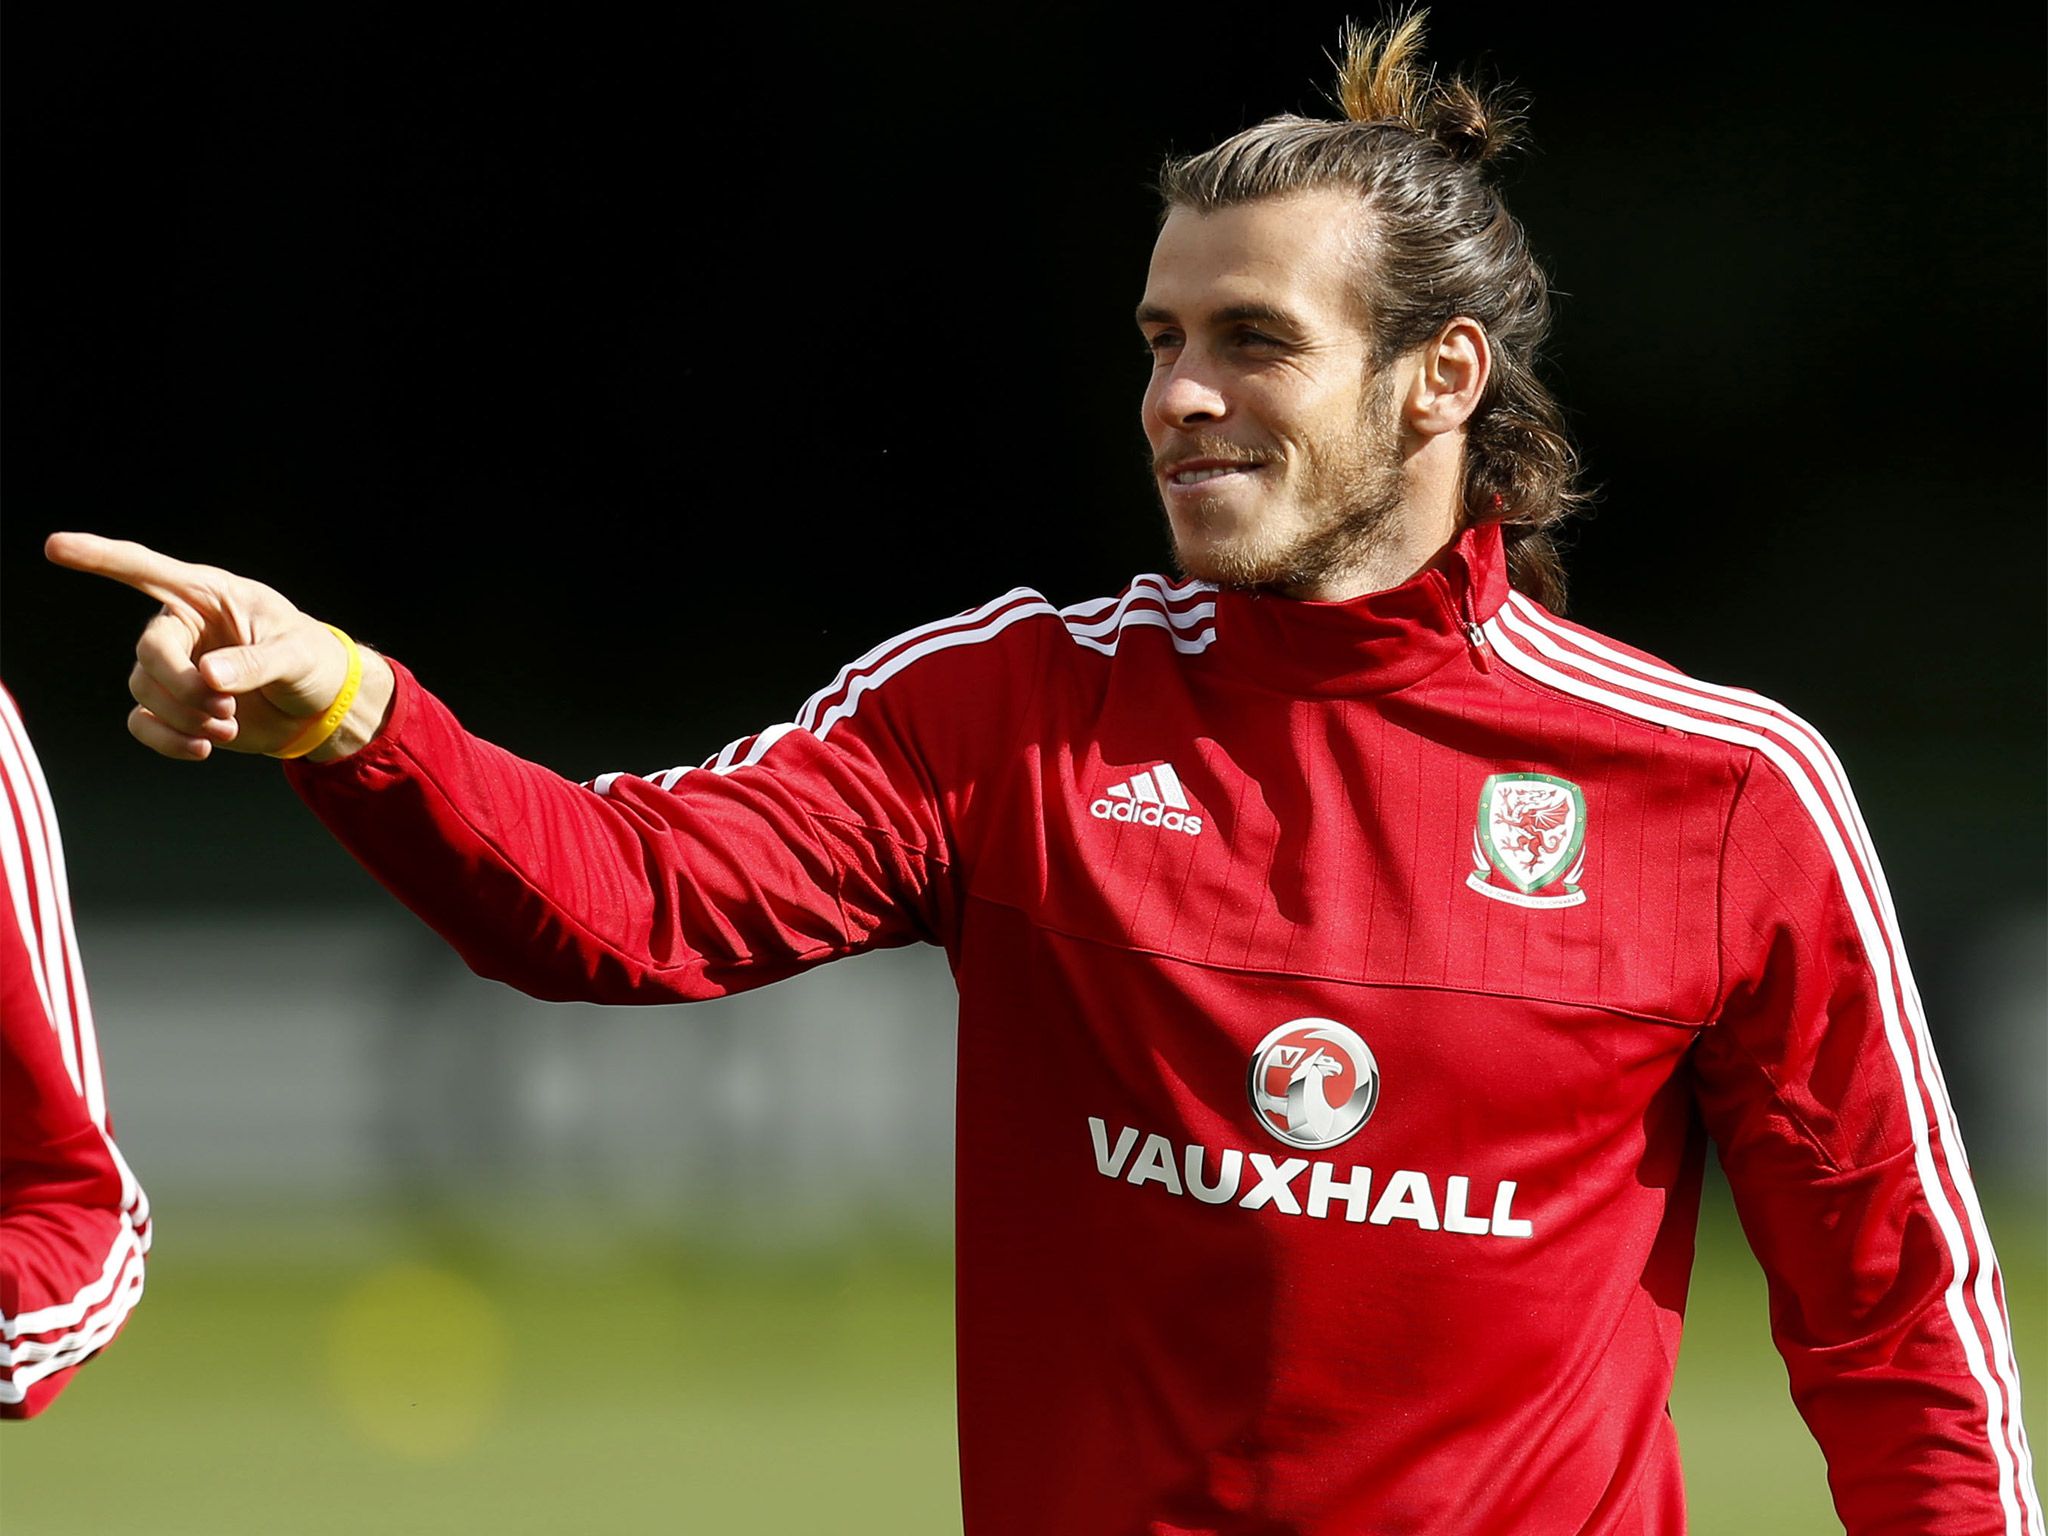 Gareth bale wallpapers pictures images gareth bale wallpaper 2048x1536 voltagebd Gallery